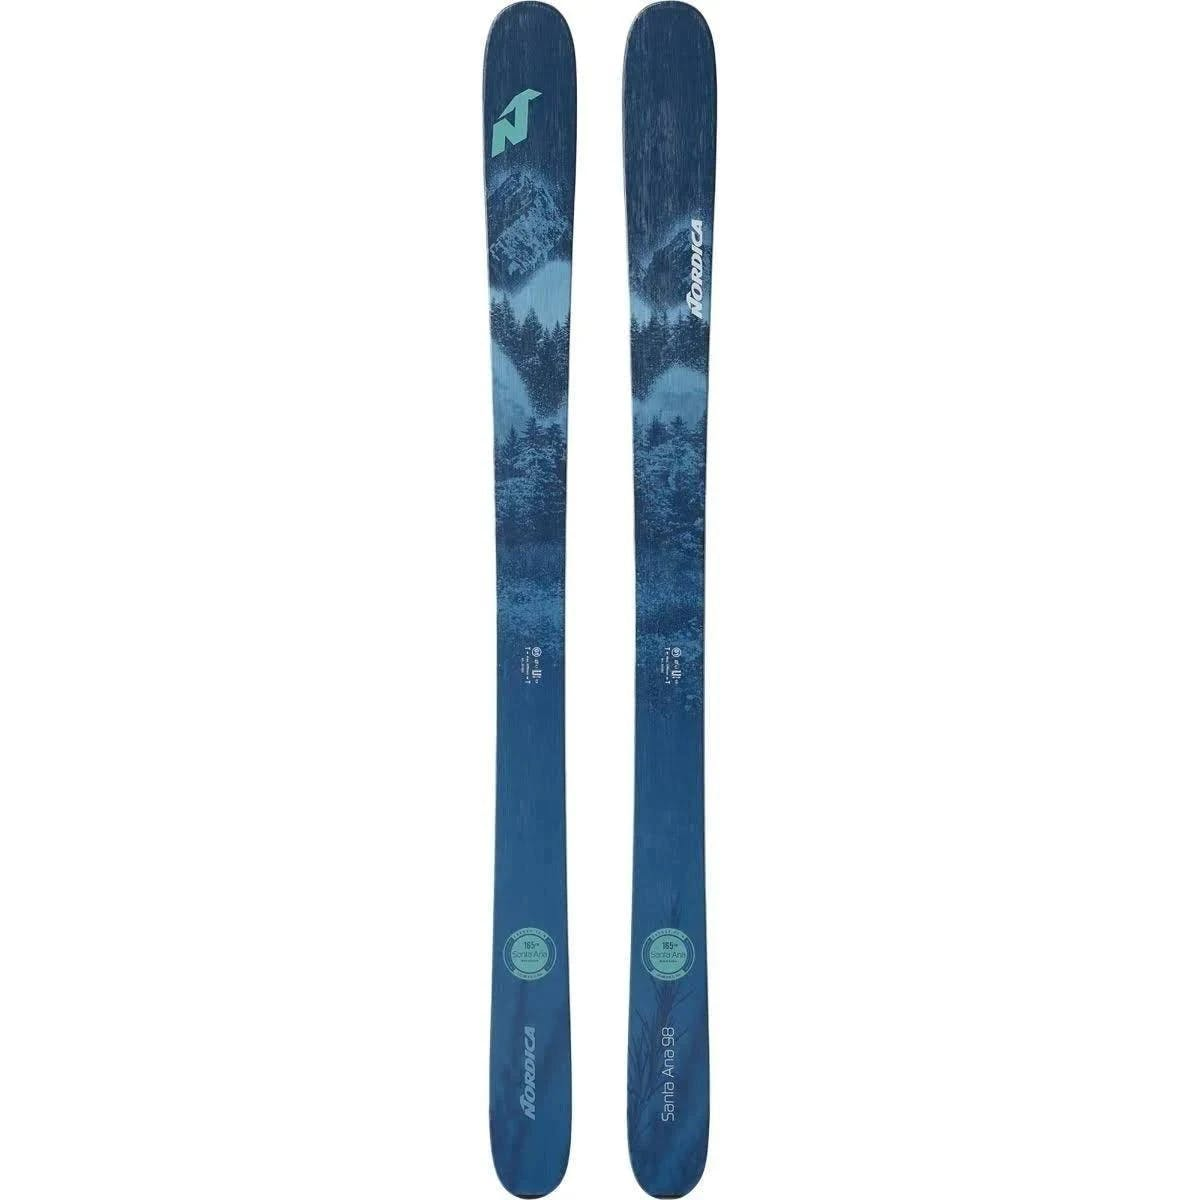 Nordica Santa ANA 98 Women's Skis · 2021